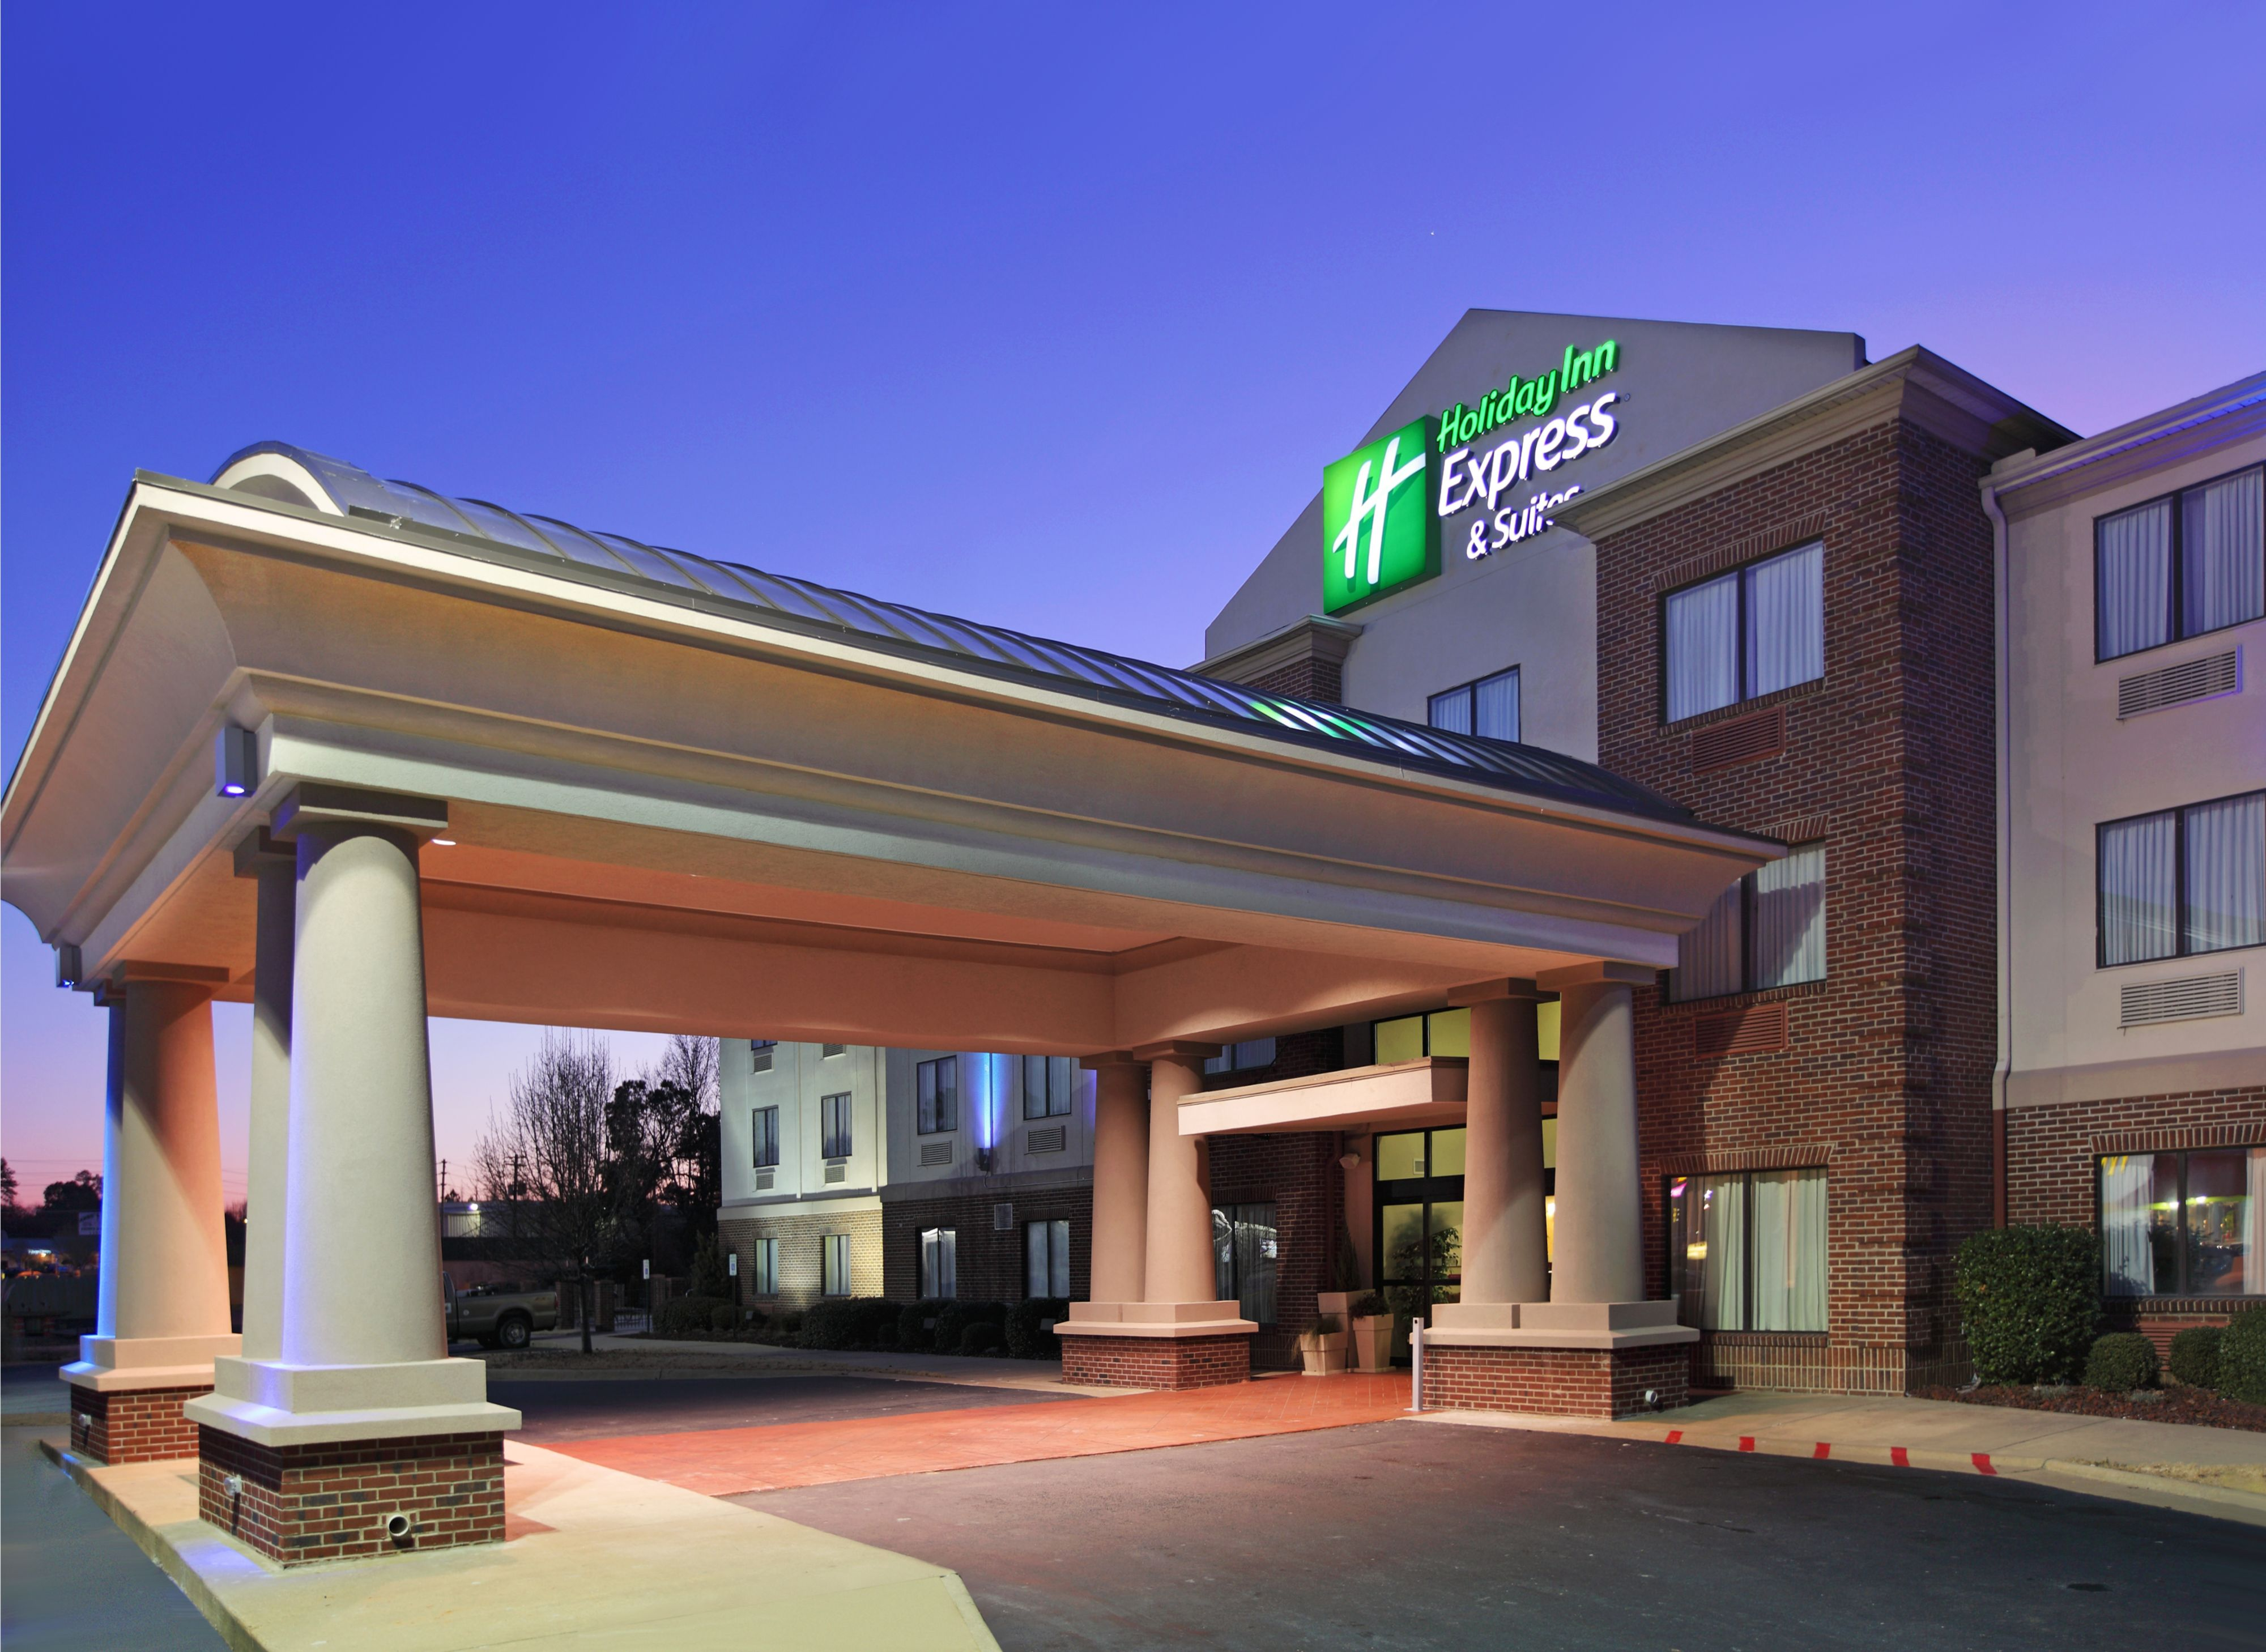 Holiday Inn Express Suites Pigeon Forge Near Dollywood In Pigeon Forge Tn 37863